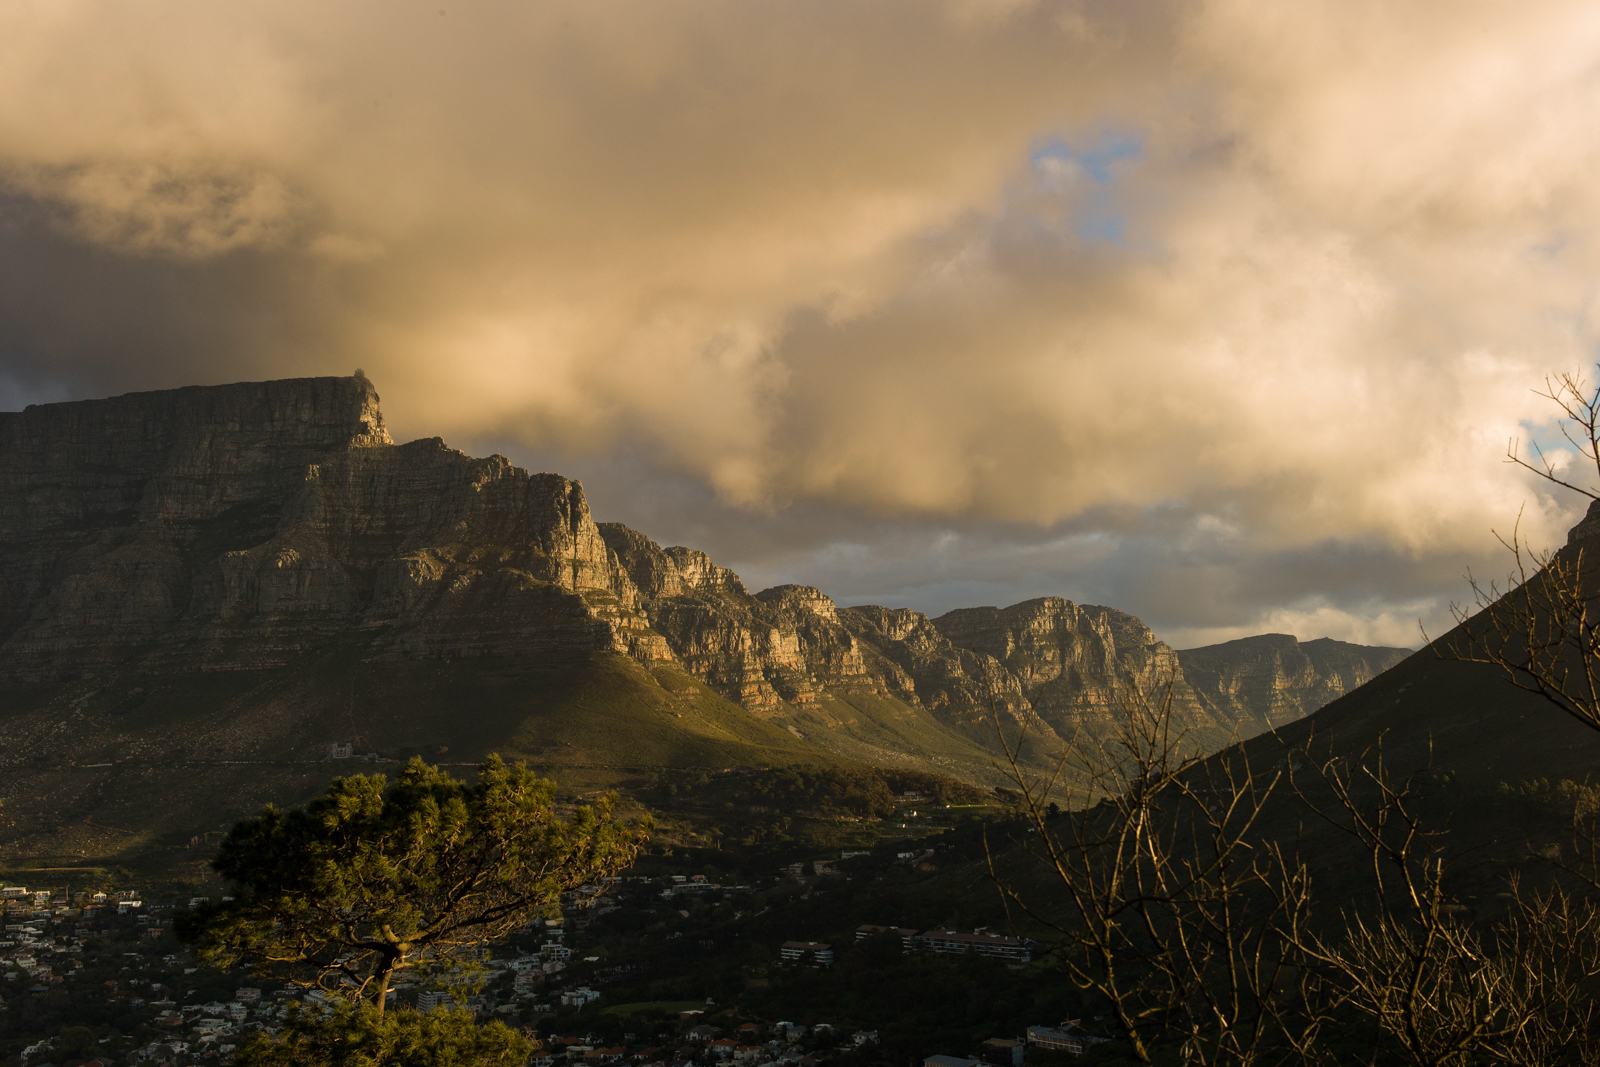 Sunset view from the top of Signal Mountain, Cape Town looking at Table Mountain (left) and the 12 Apostles.   Photographs by Anacleto Rapping ©2012